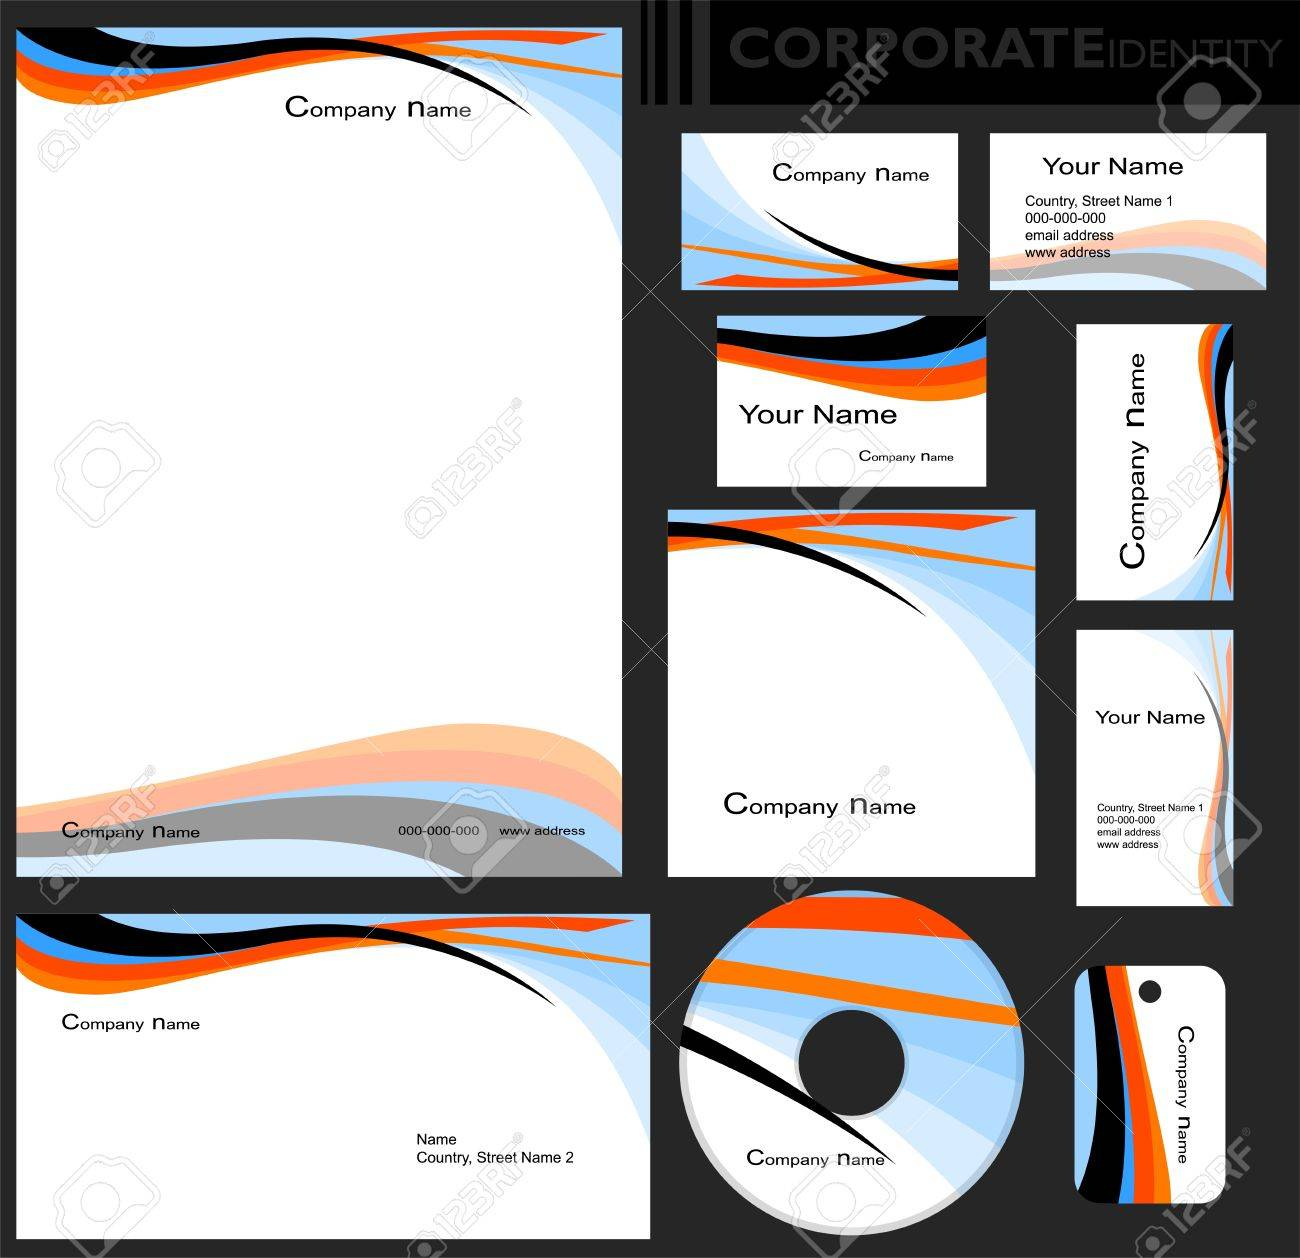 Corporate identity template editable set design including business corporate identity template editable set design including business paper cards id cd cheaphphosting Choice Image